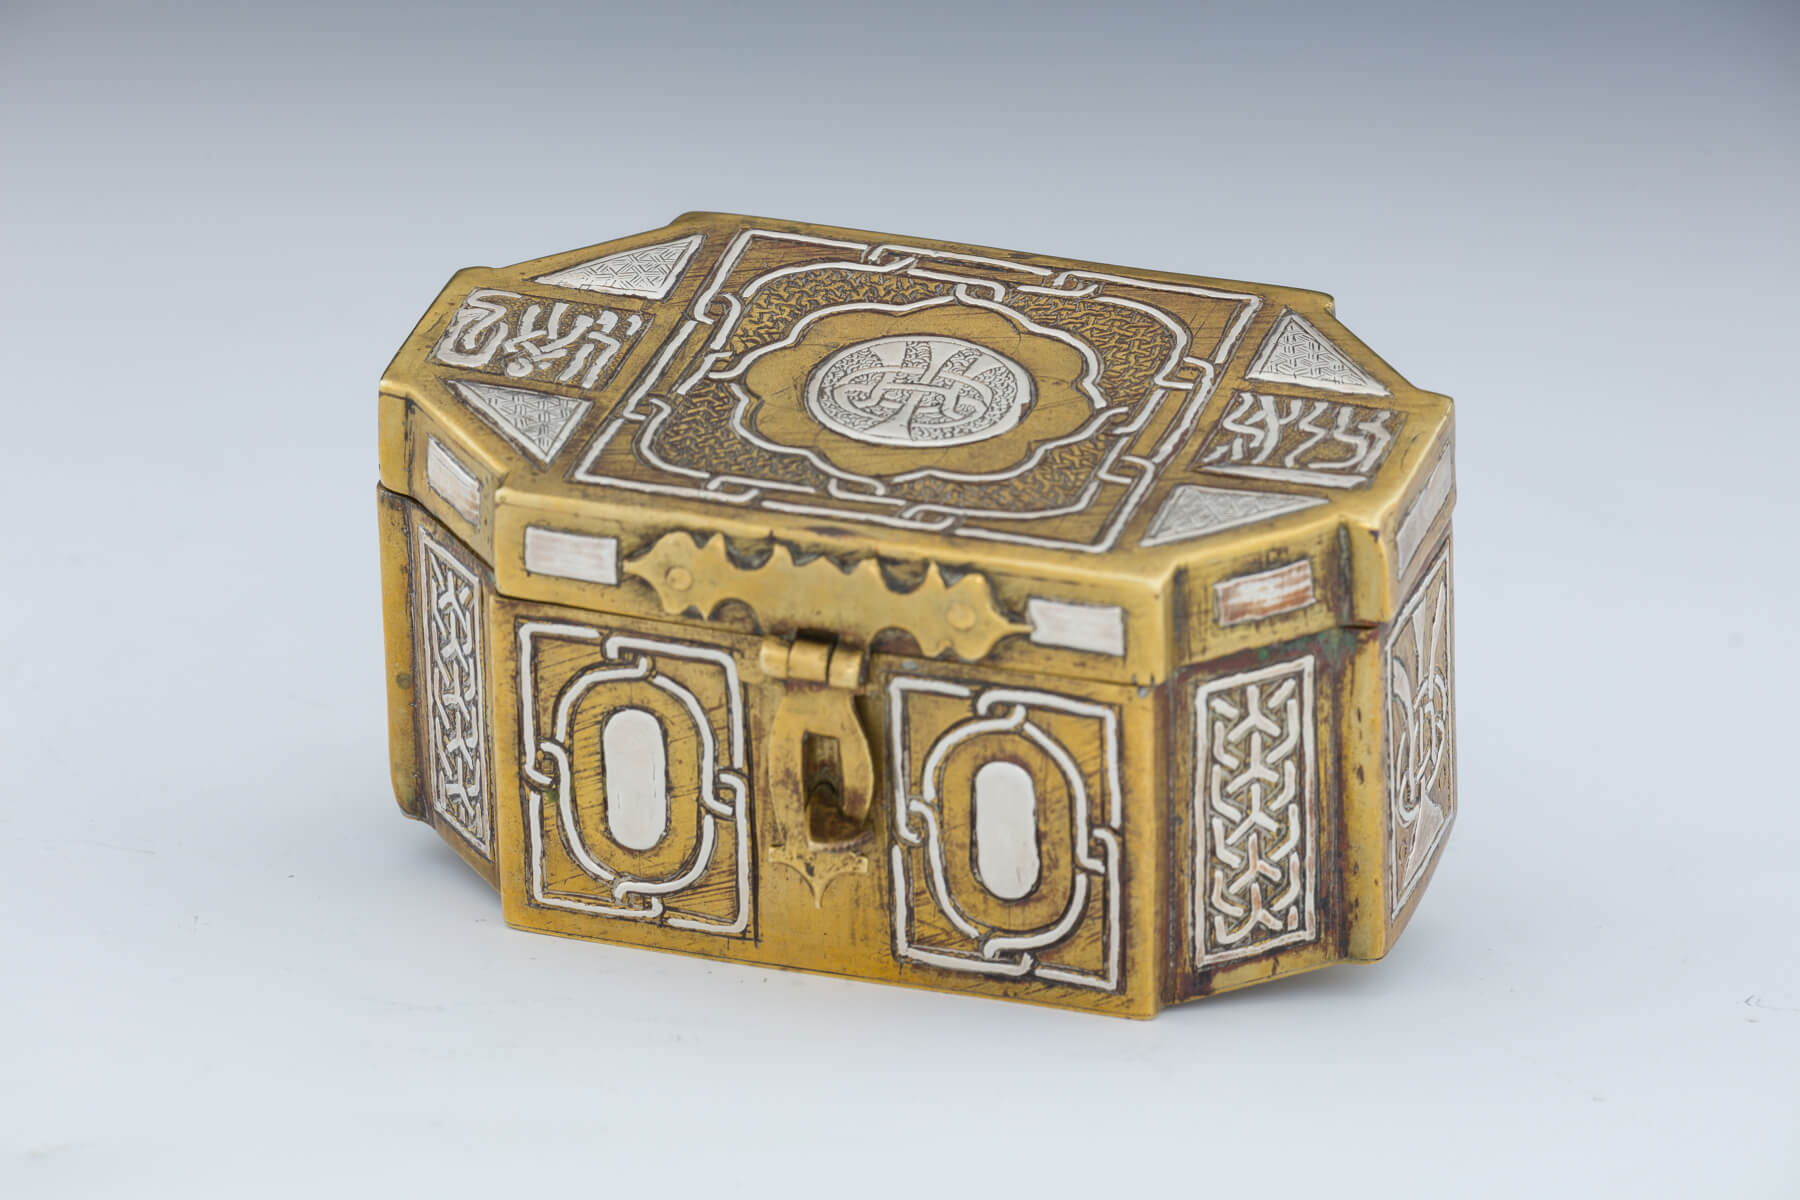 042. A Damascene Jewelry Box by Bezalel